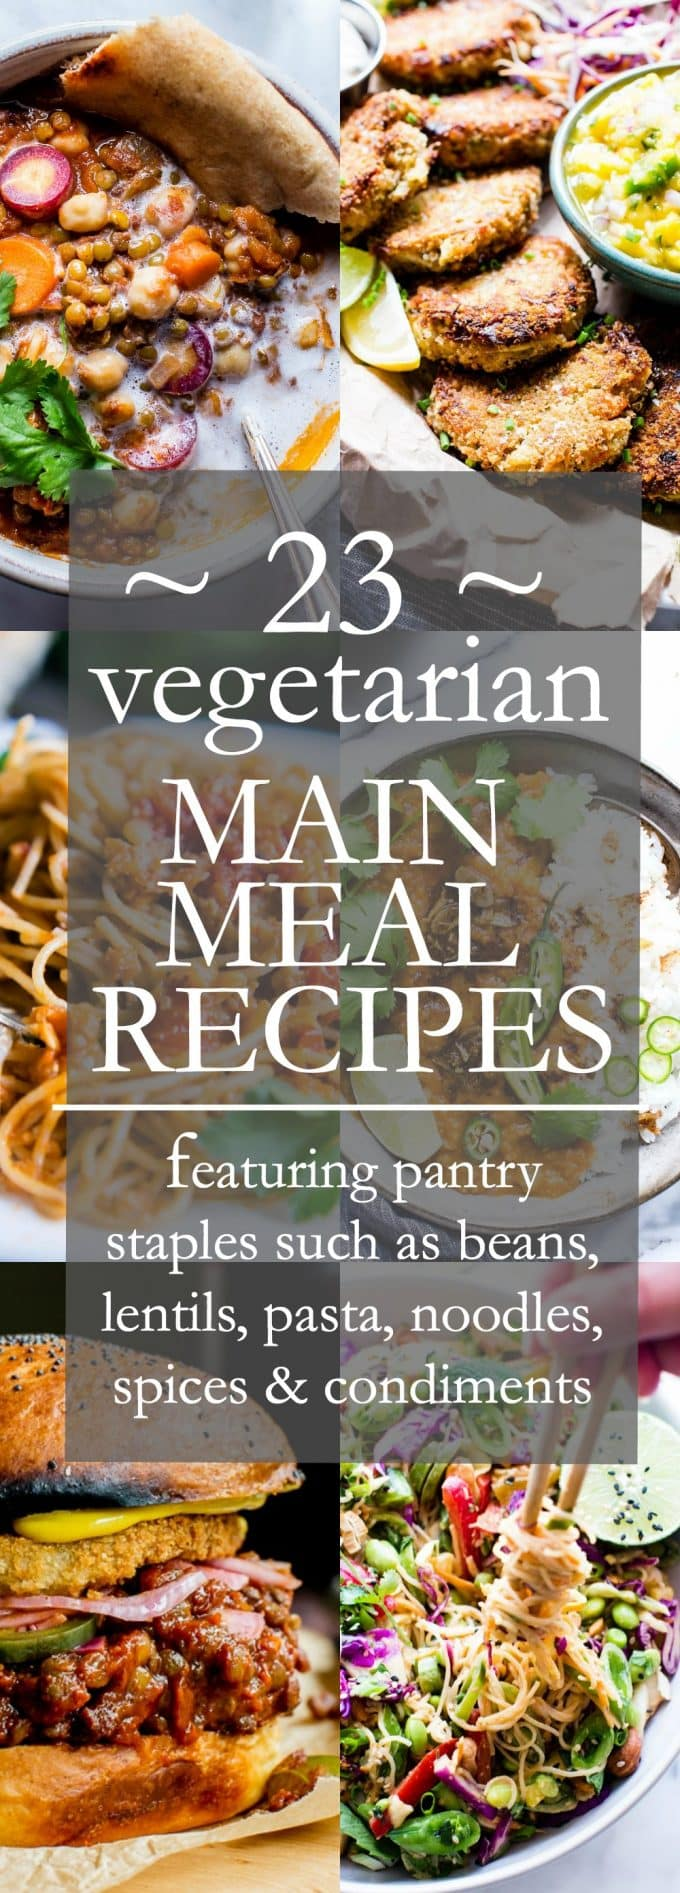 A Collection of 23 Vegetarian Main Meal Recipes Ad to Take you to the Recipe Round Up Post